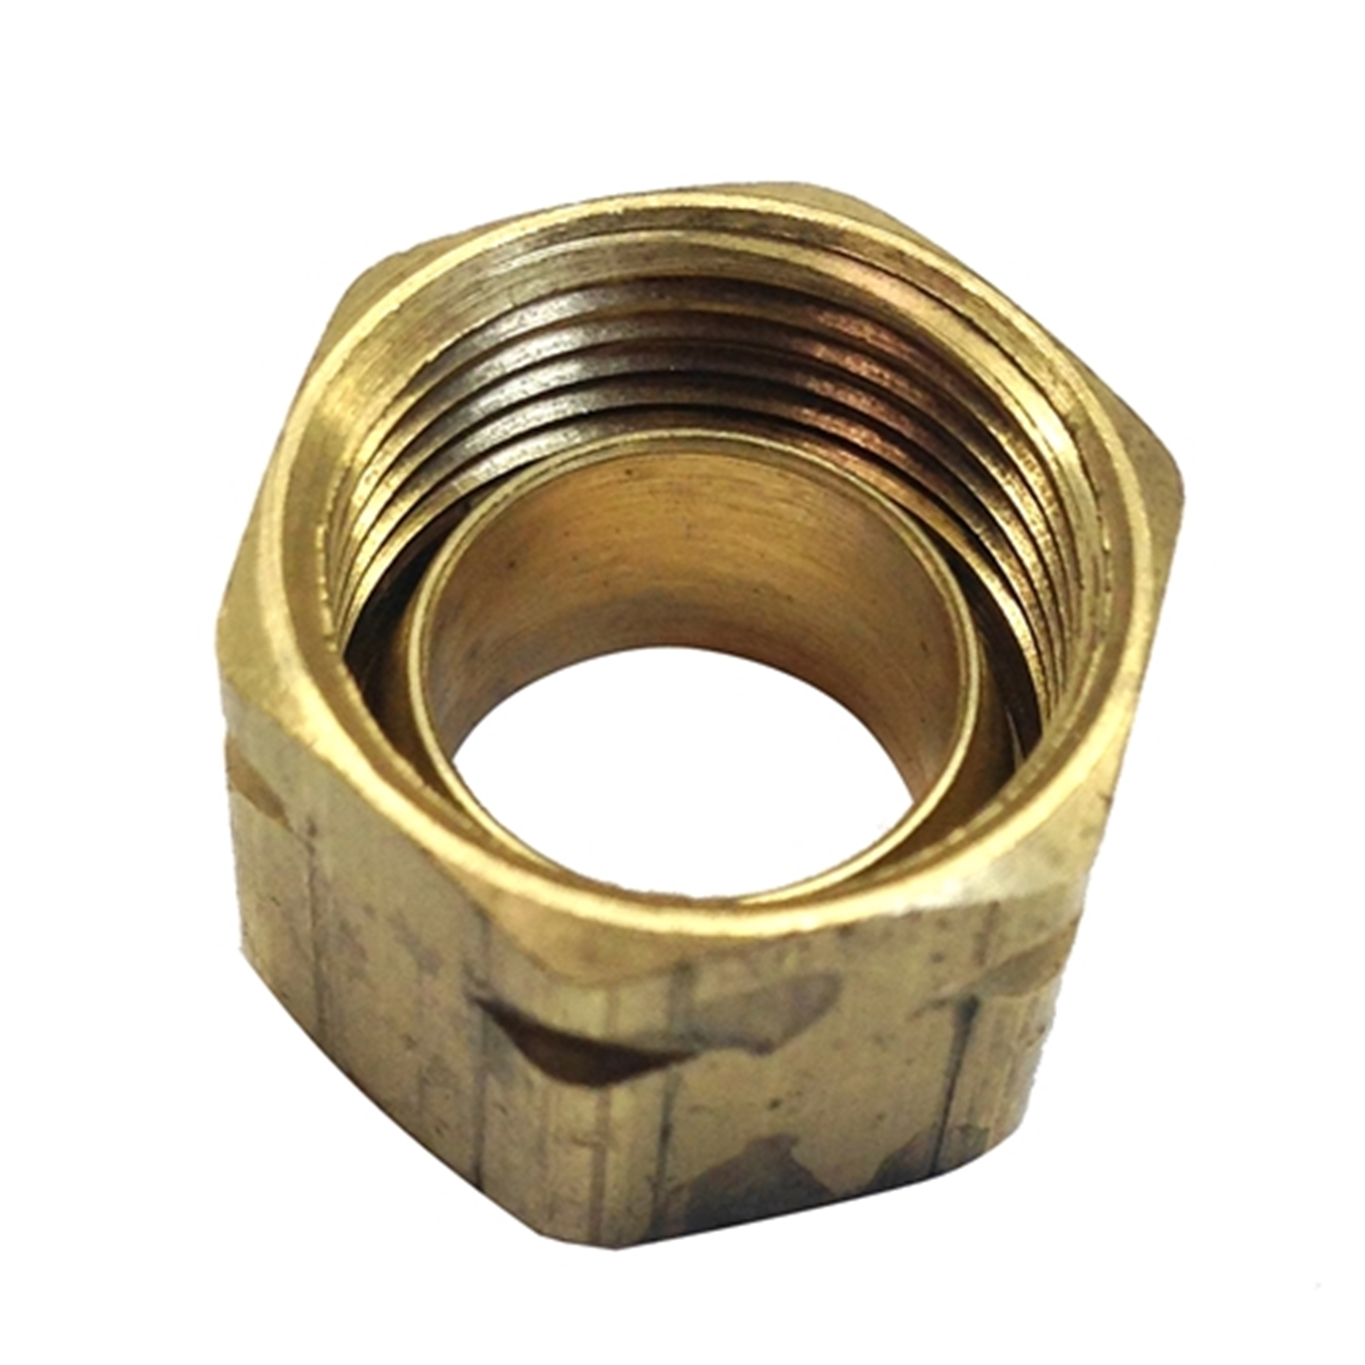 71004K Brass Nut w/Sleeve #61CA-6